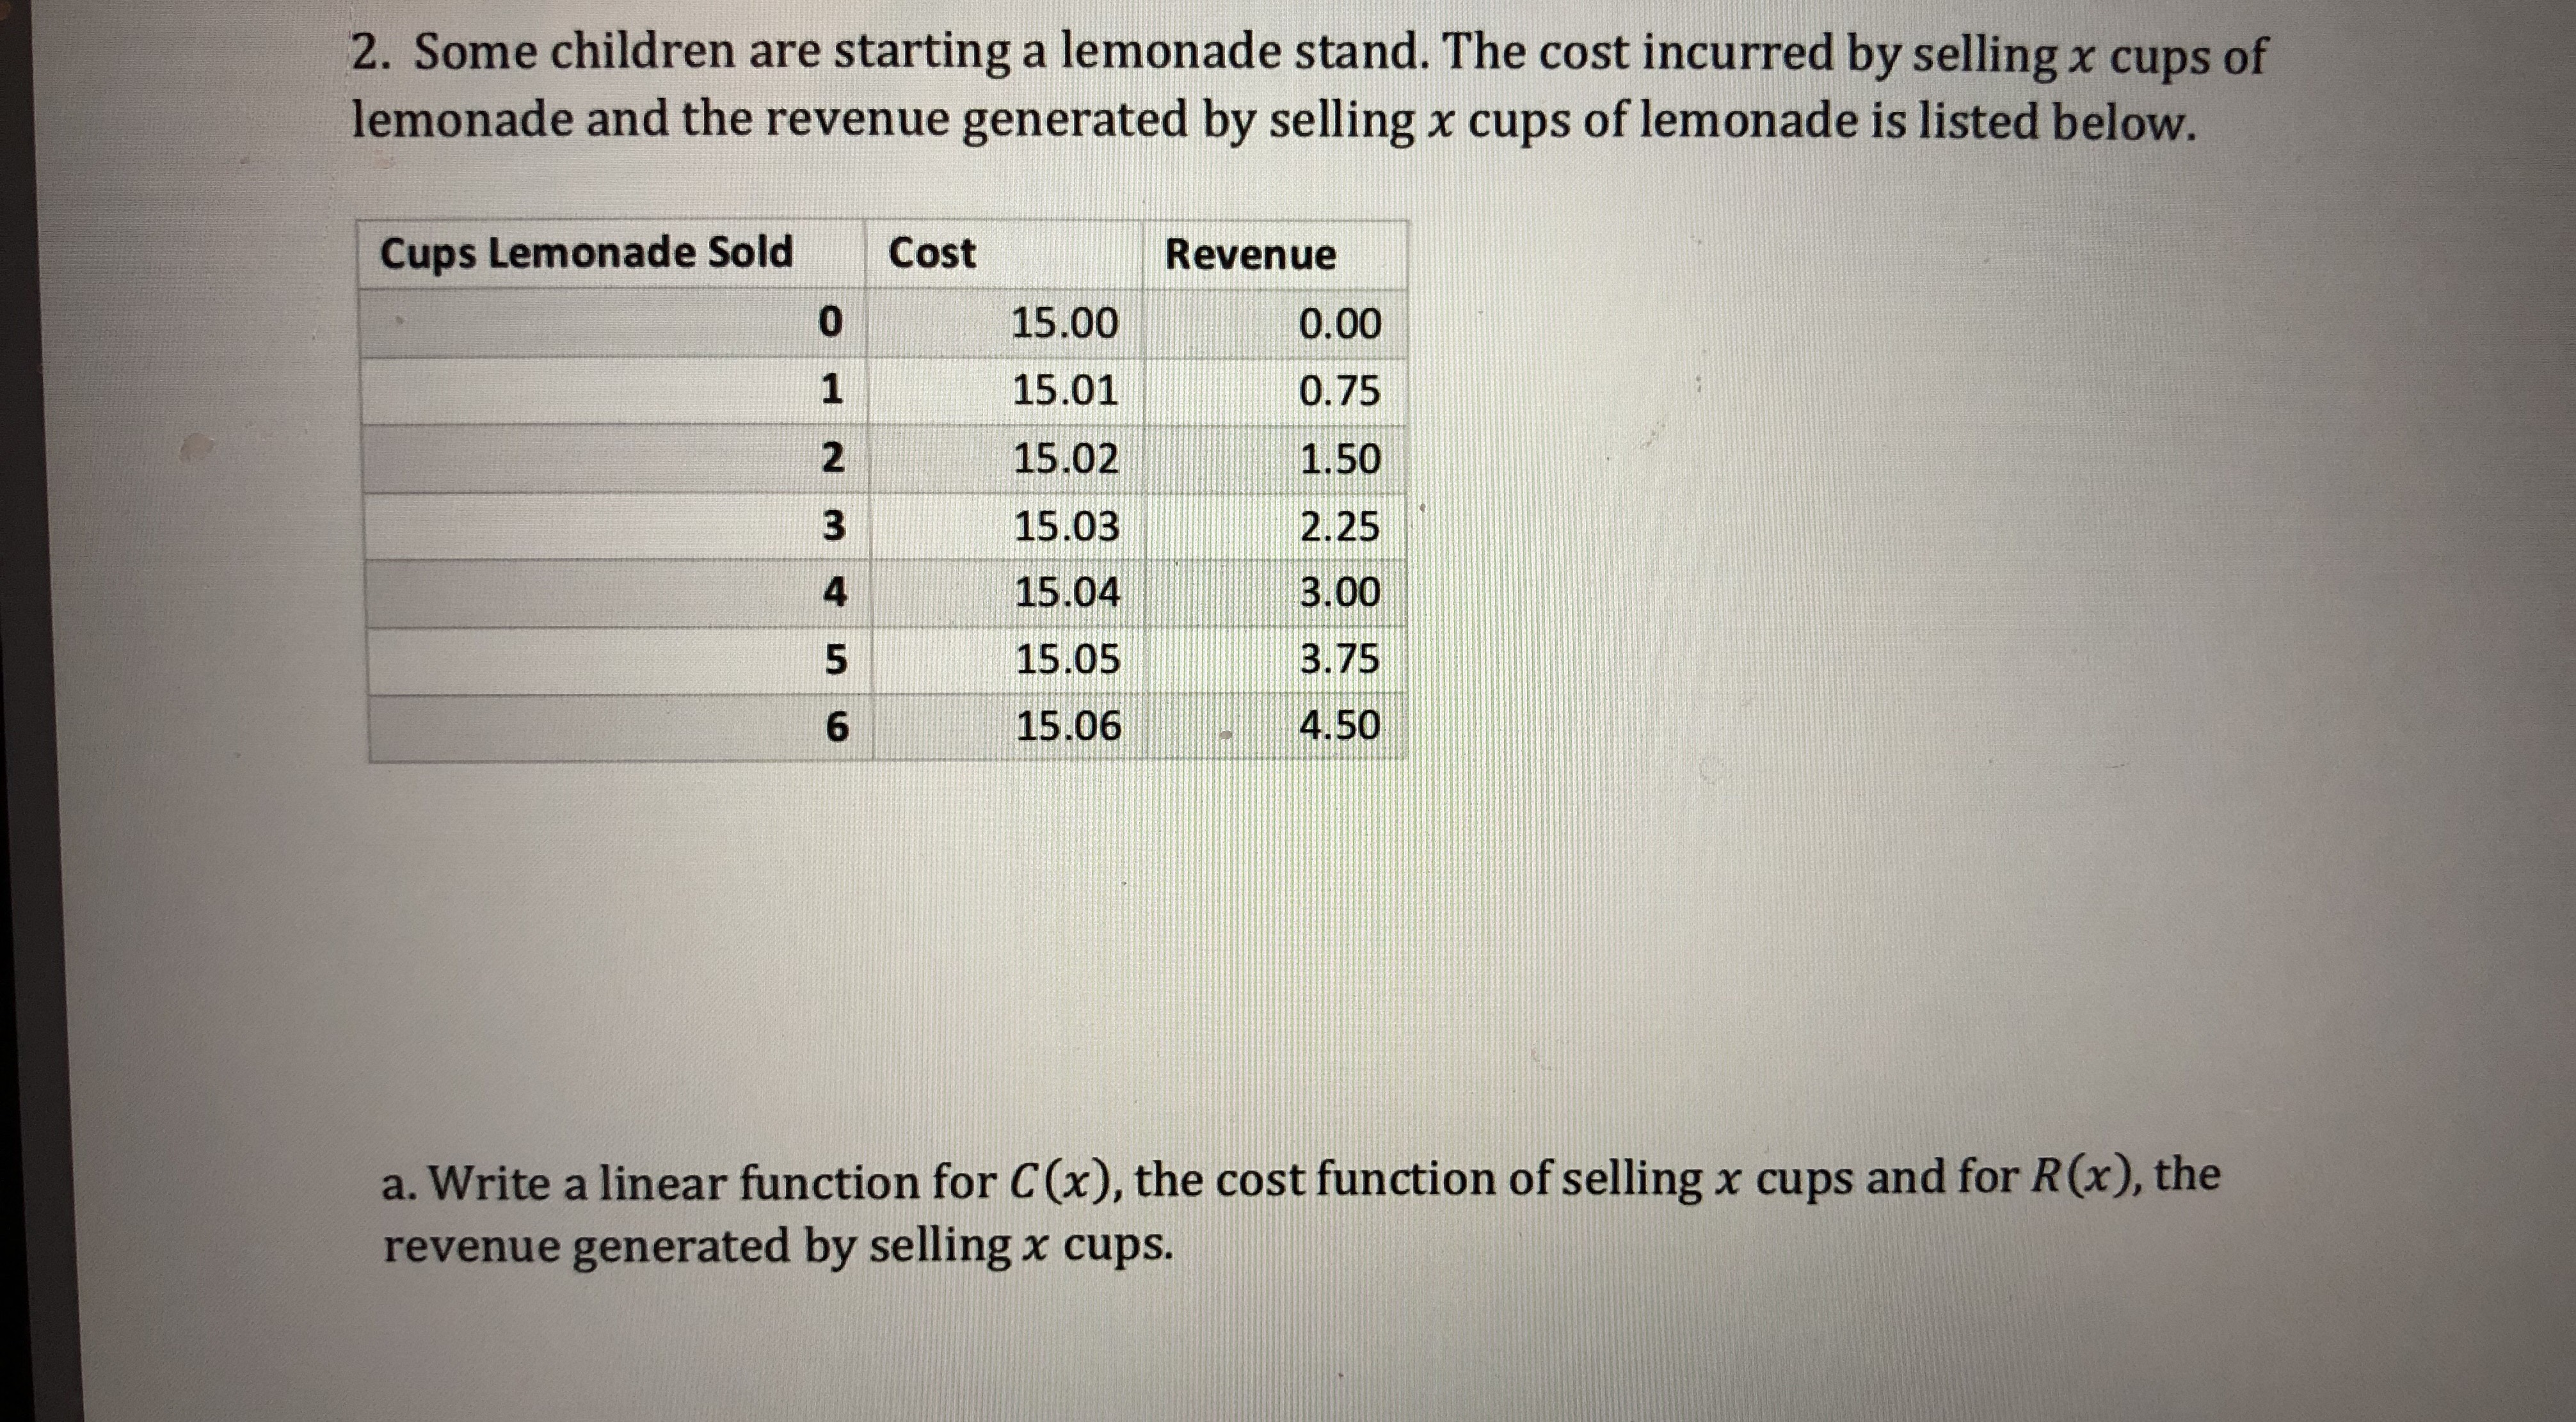 2. Some children are starting a lemonade stand. The cost incurred by selling x cups of lemonade and the revenue generated by selling x cups of lemonade is listed below. Cups Lemonade Sold Cost Revenue 15.00 15.01 15.02 15.03 15.04 15.05 15.06 0 0.00 0.75 1.50 2.25 3.00 3.75 4.50 2 4 6 a. Write a linear function for C(x), the cost function of selling x cups and for R(x), the revenue generated by selling x cups.